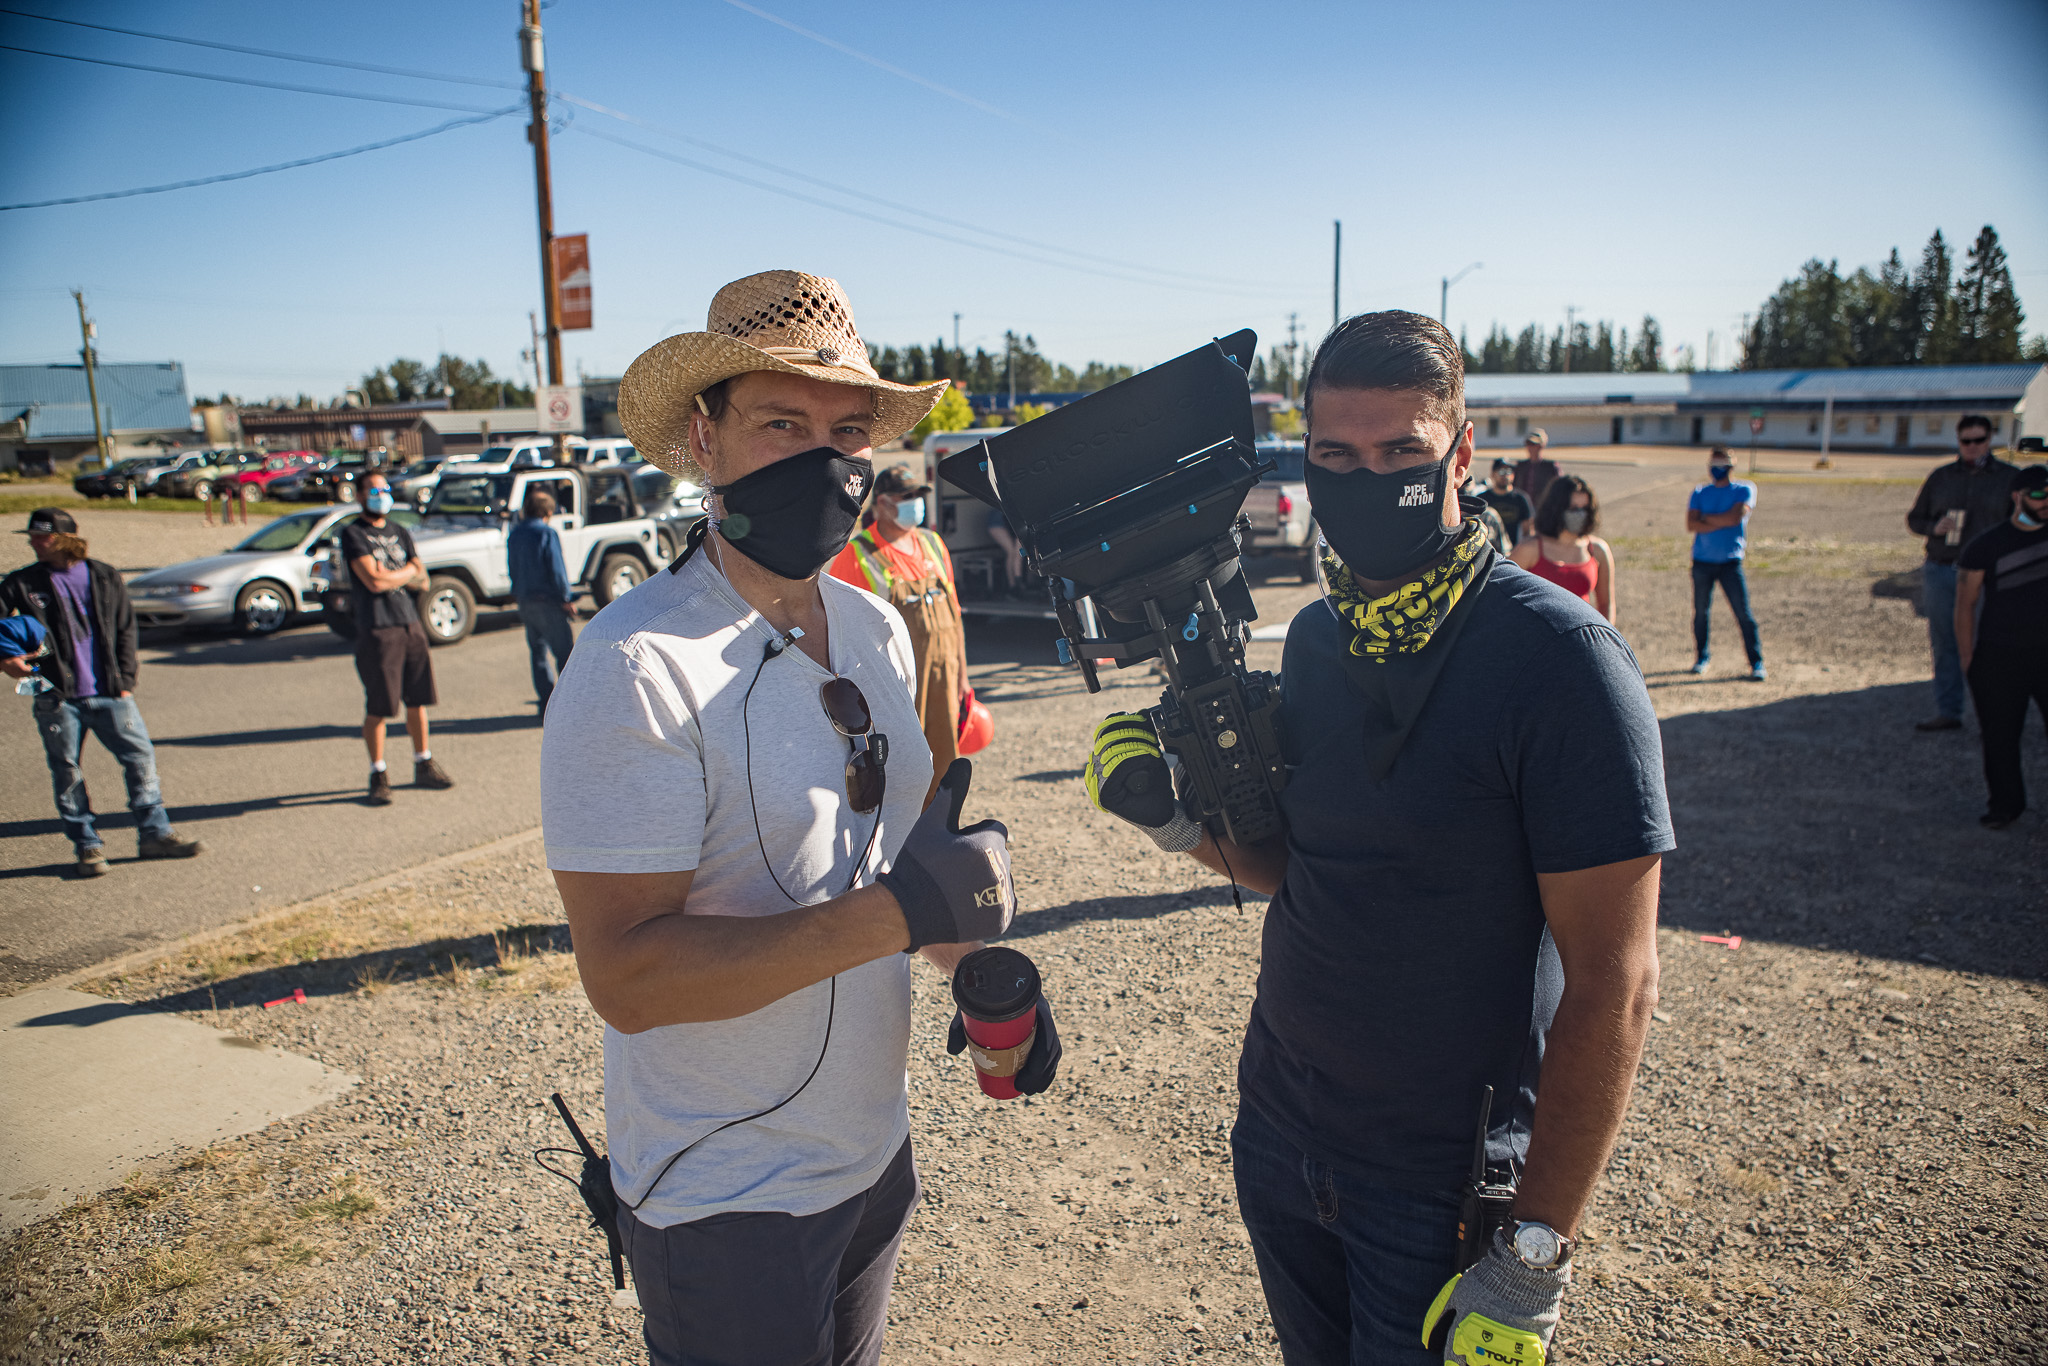 Daniel Svedberg and Raoul Bhatt in Pipe Nation (2021)